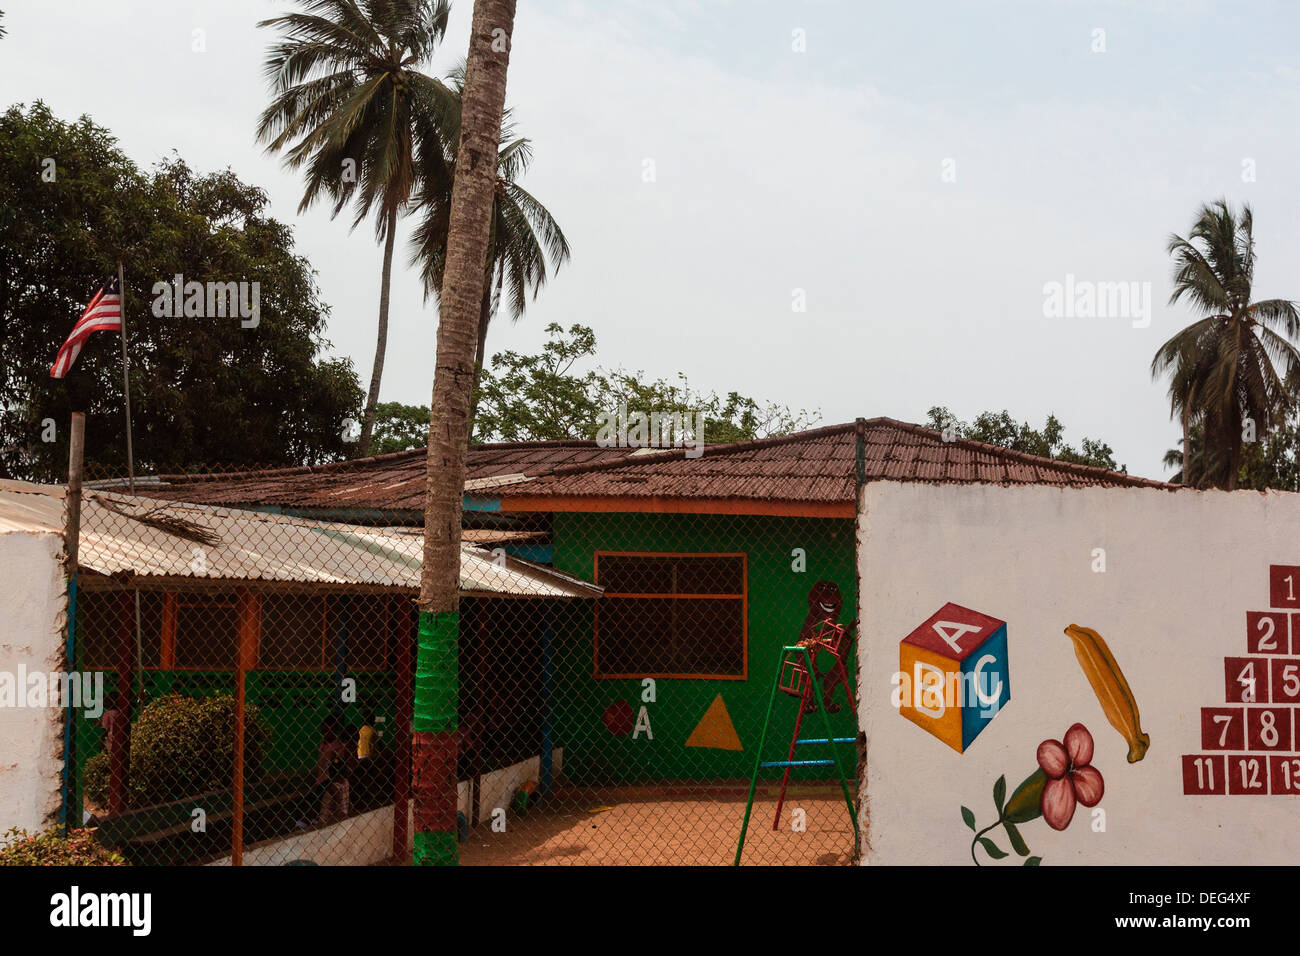 Africa, Liberia, Monrovia. Courtyard of Beginners Childcare Center. - Stock Image